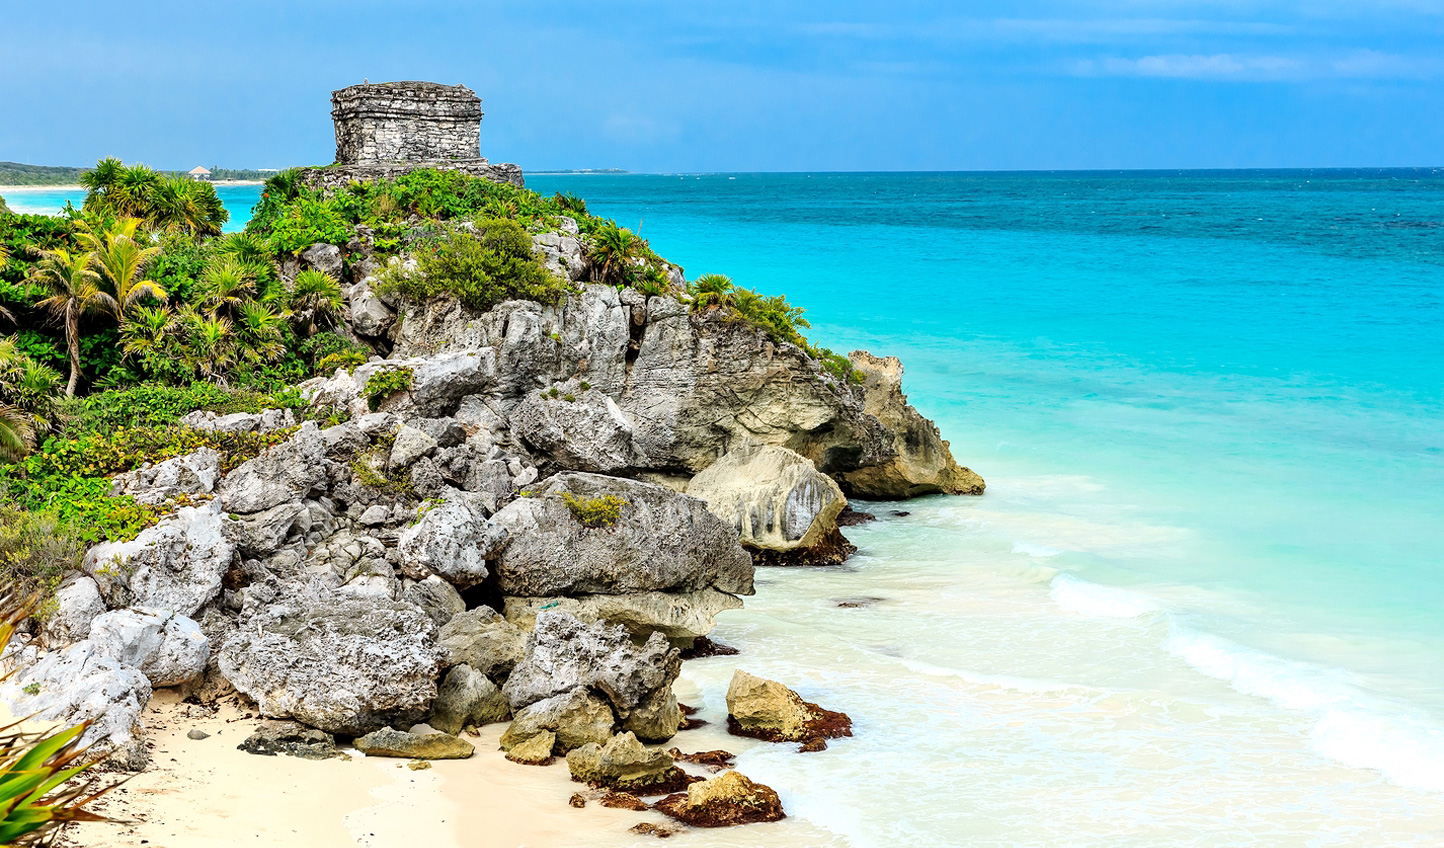 Discover the Tulum coastline, littered with Mayan ruins